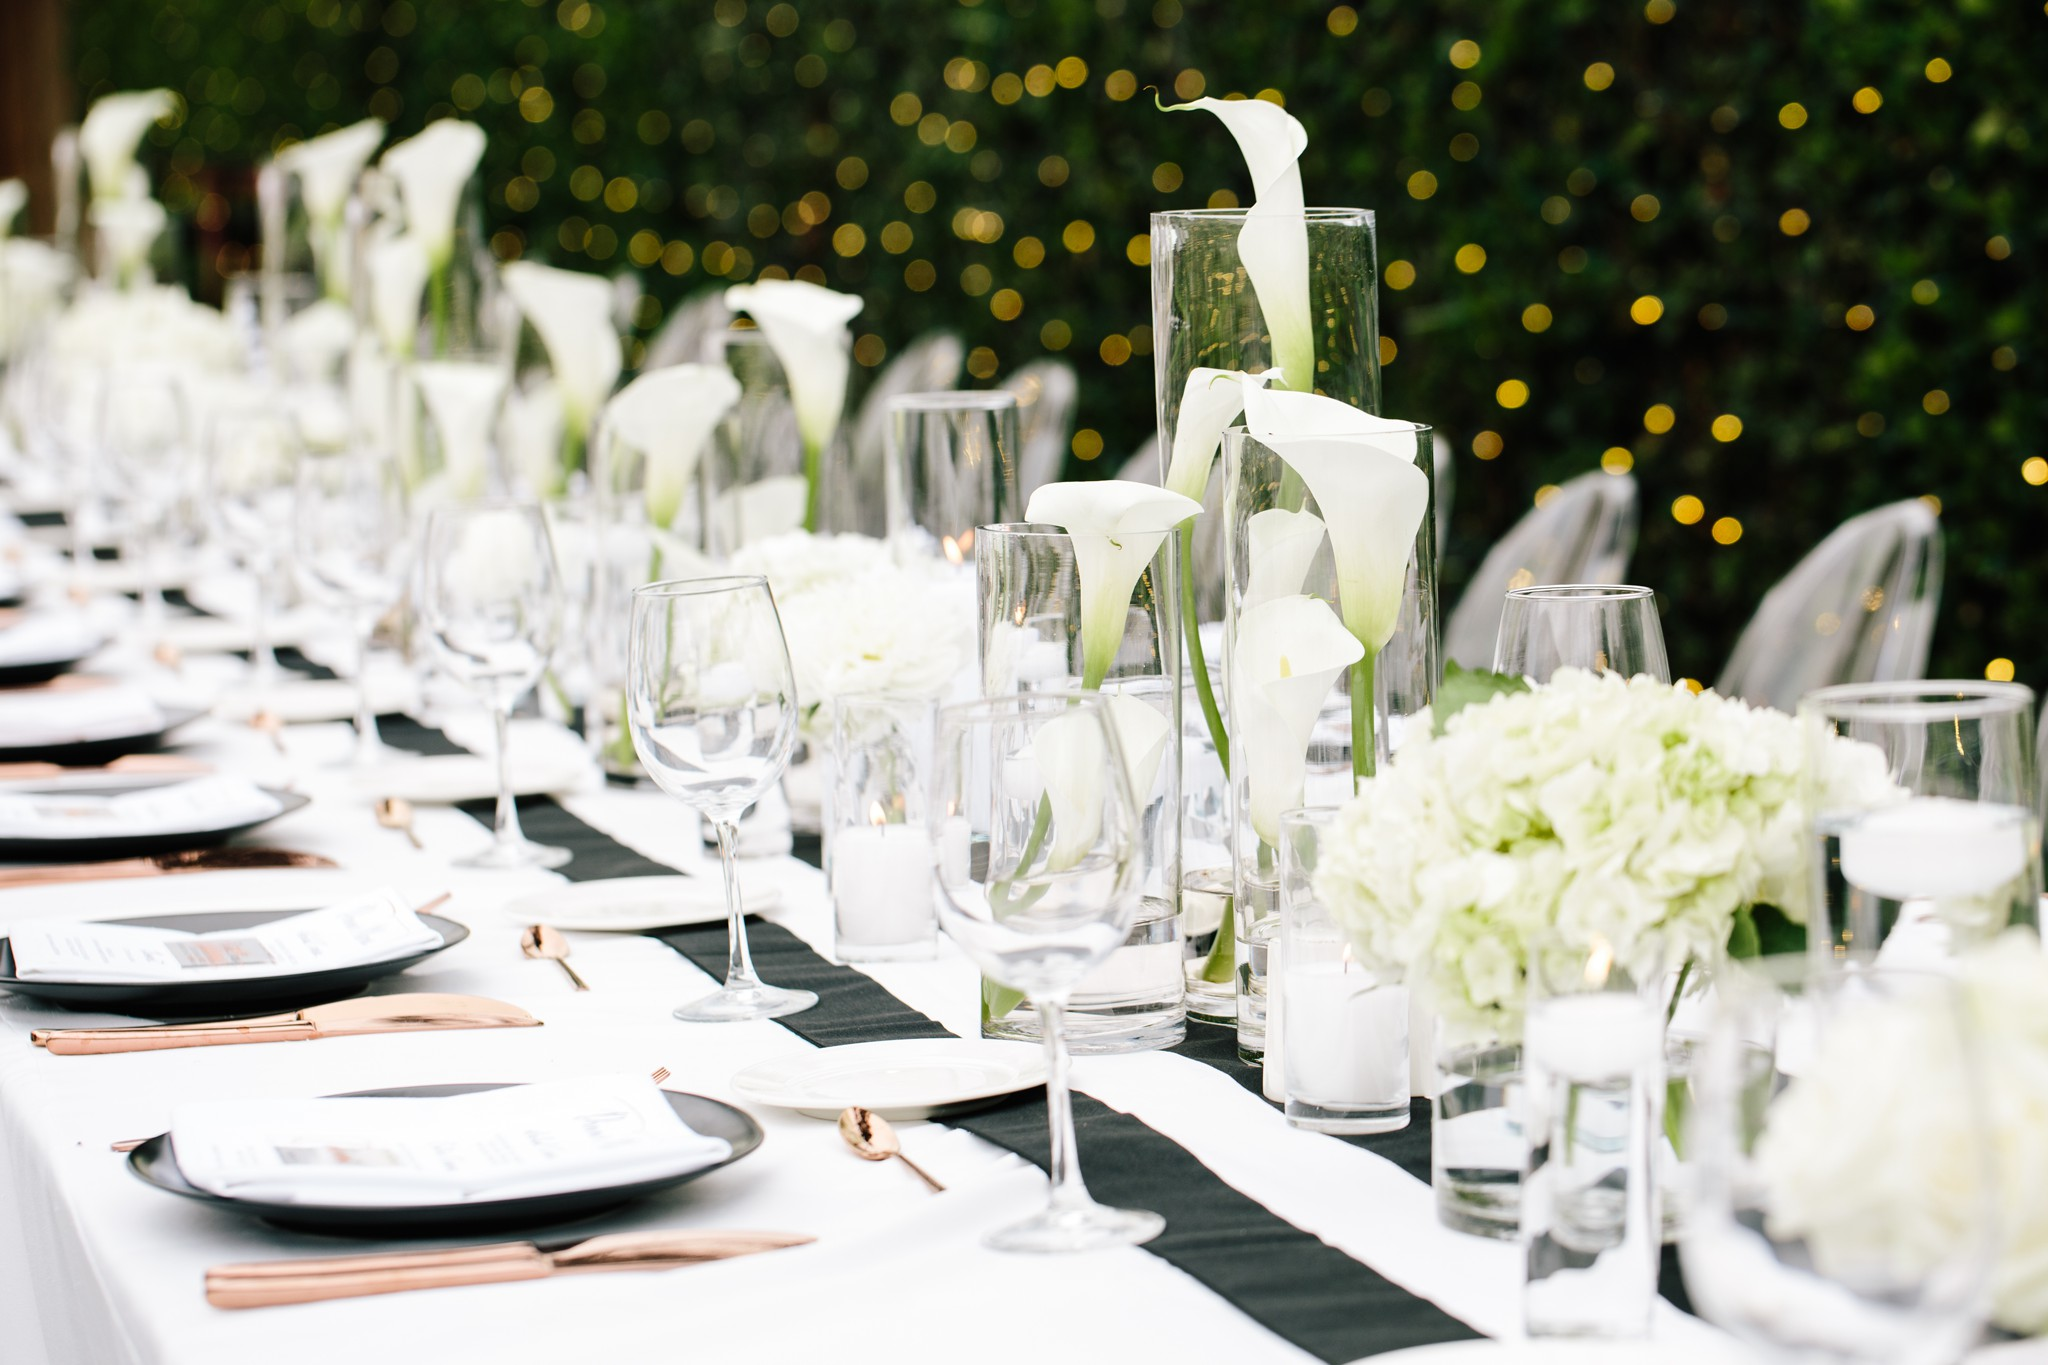 177 THEDELAURAS_THE_INN_AT_RANCHO_SANTA_FE_WEDDING_CENTERPIECE_BLOG177.jpg